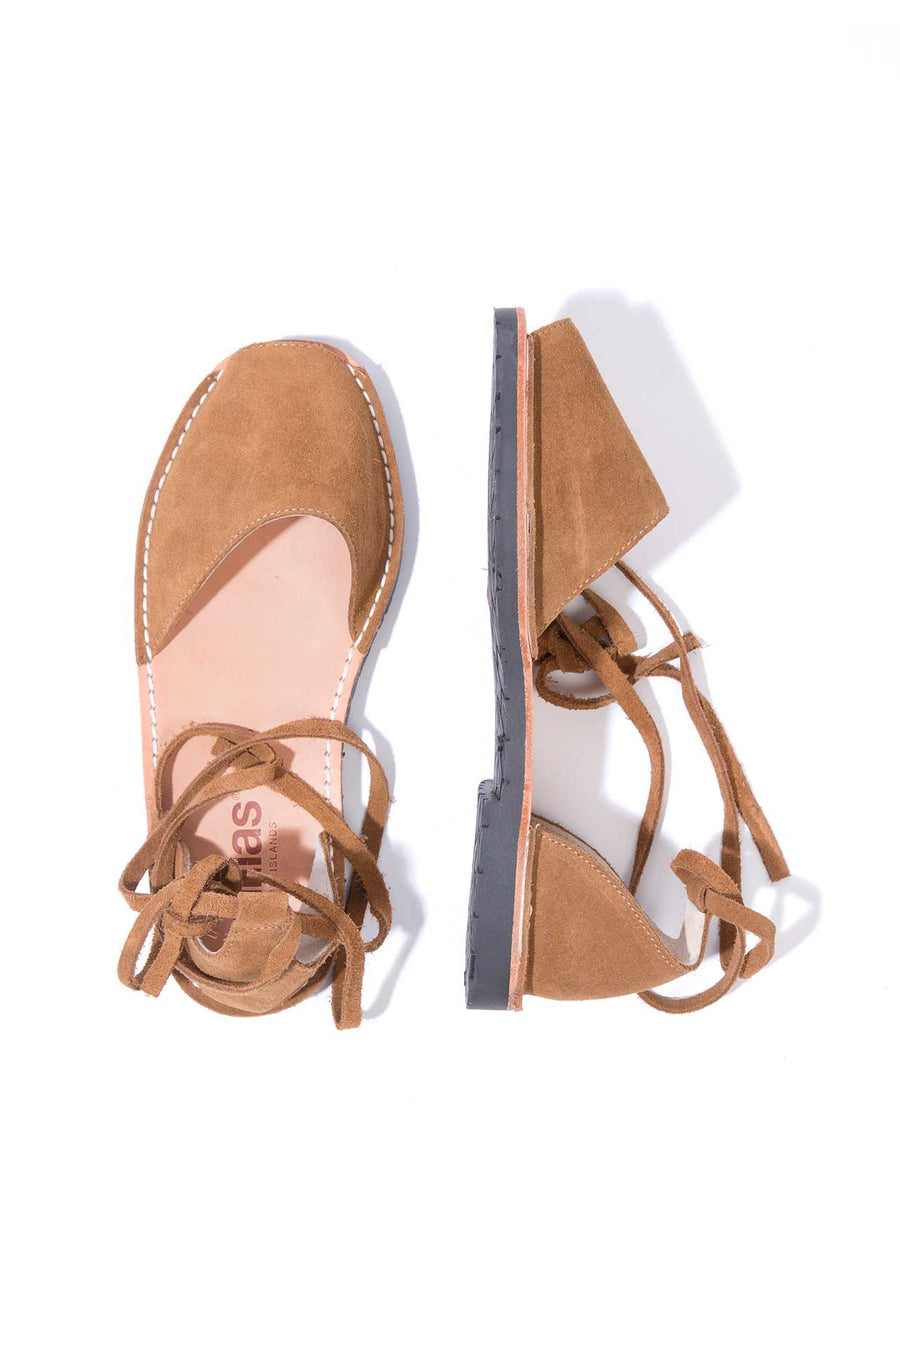 Arenilla - Suede Ankle Tie Sandals